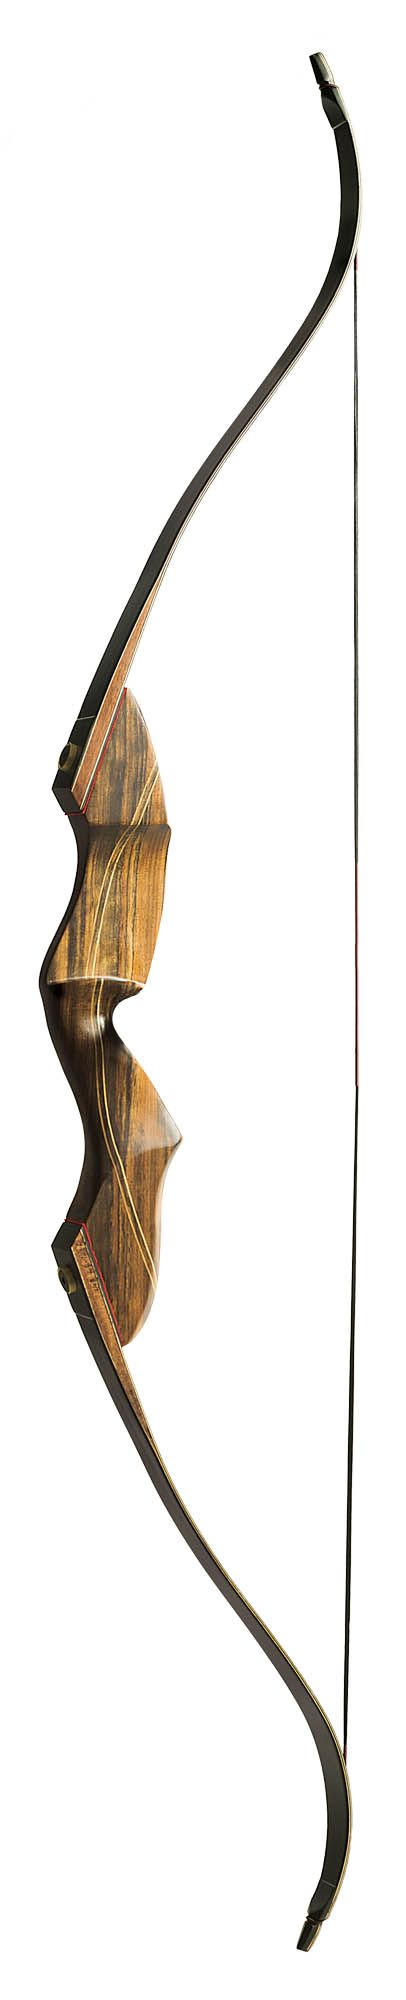 Heritage Recurve Bows, Traditional Recurves, Honor Takedown Bow